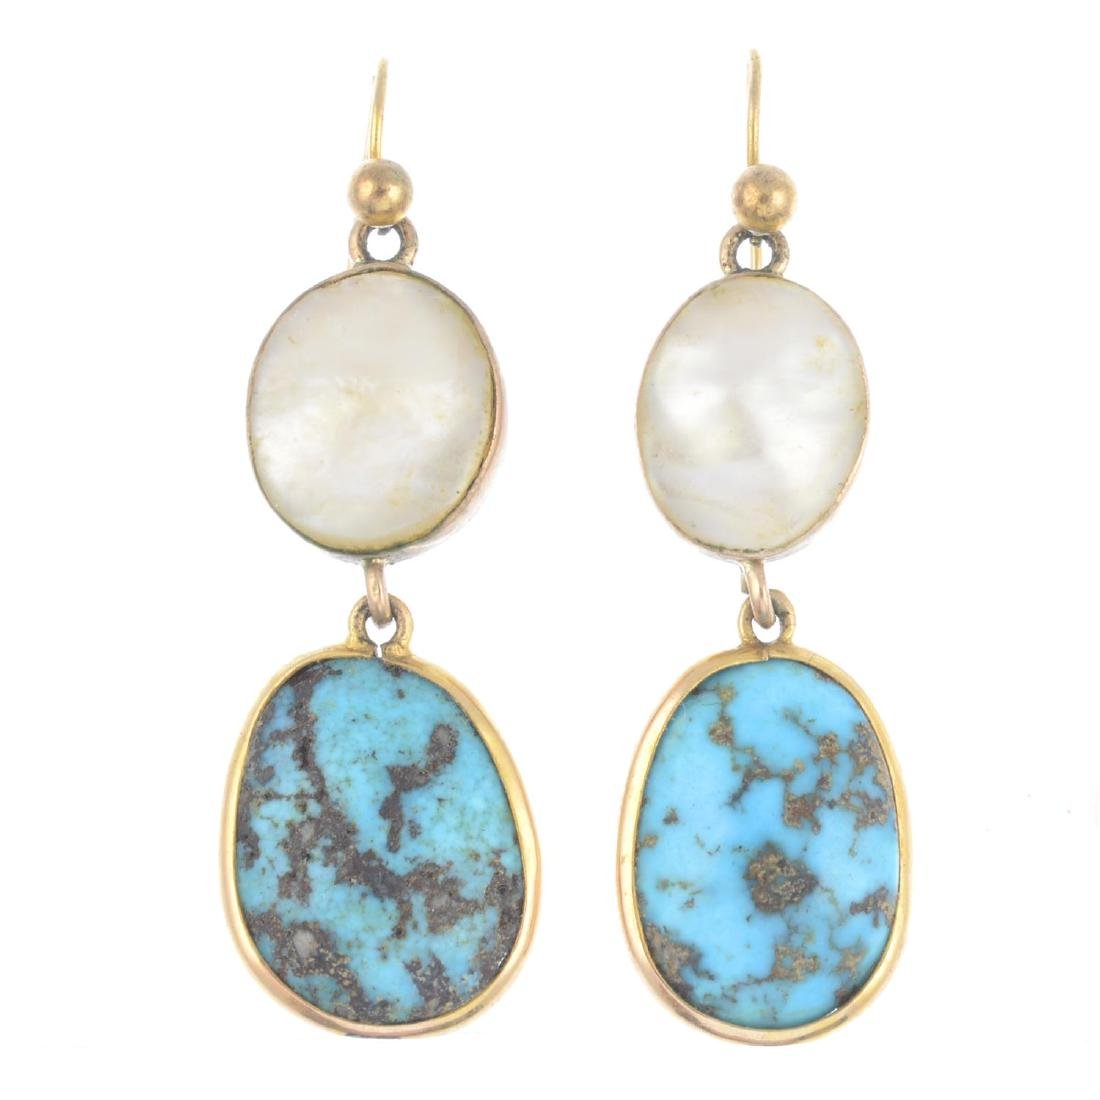 A pair of composite early 20th century turquoise and